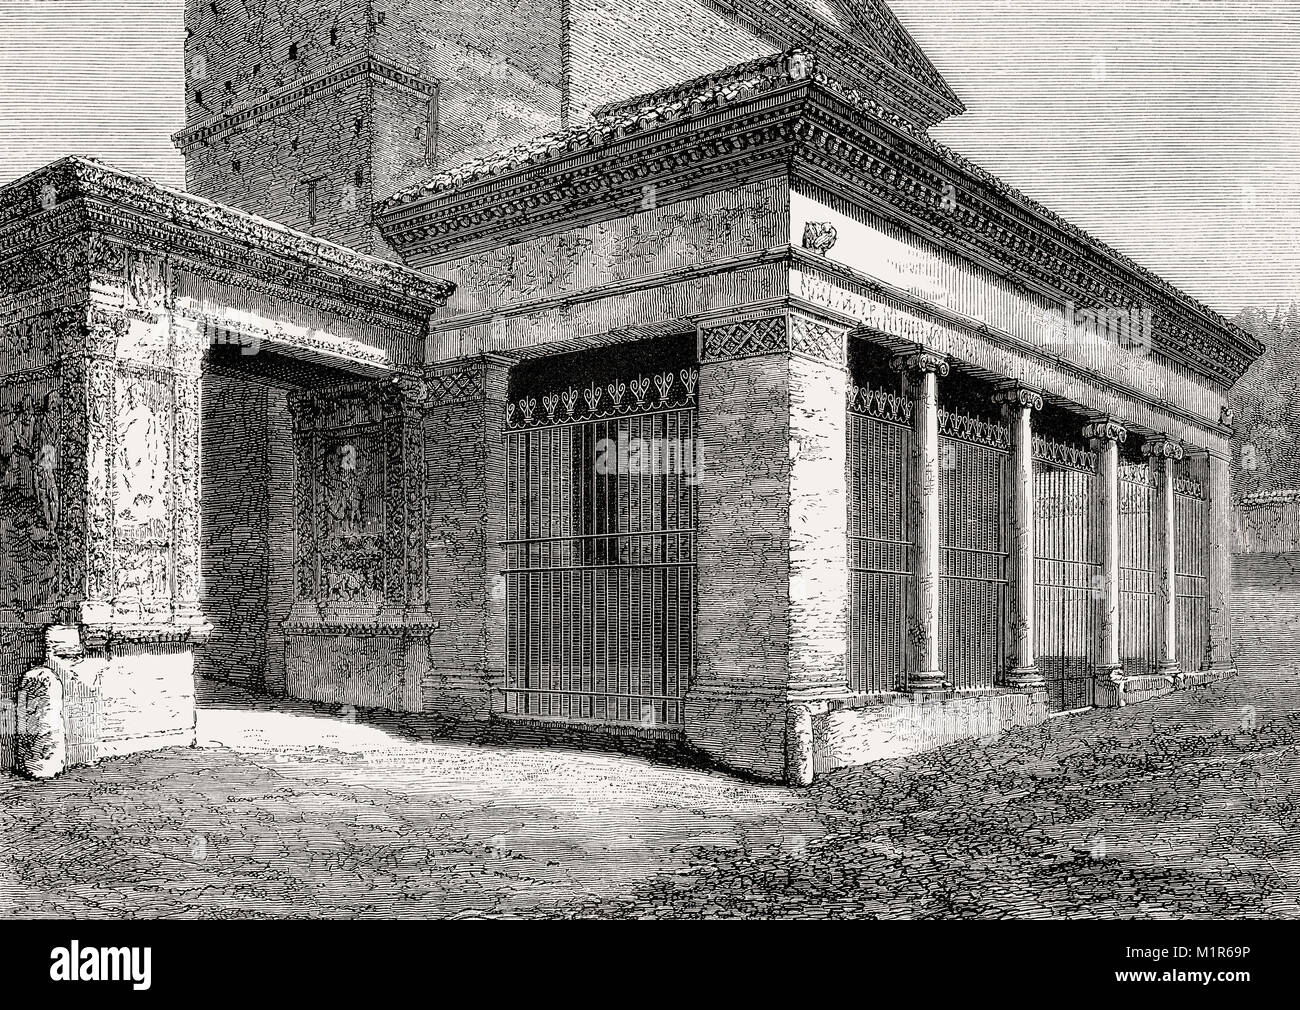 Arcus Argentariorum, San Giorgio, Velabro, Rome, Italy, 19th Century Stock Photo